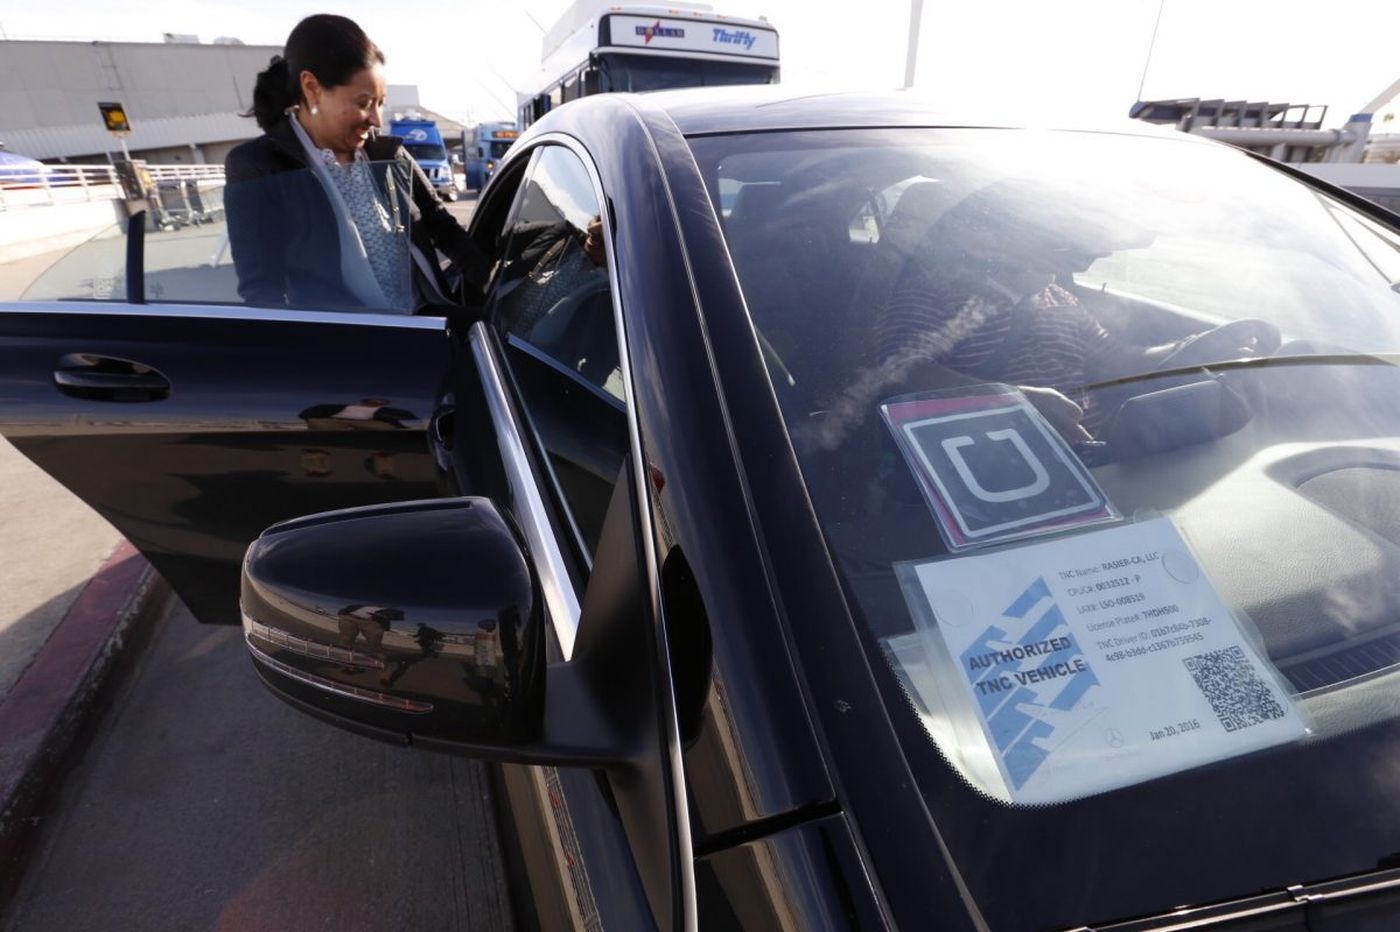 New Uber Express Pool offers cheaper ride, less convenience